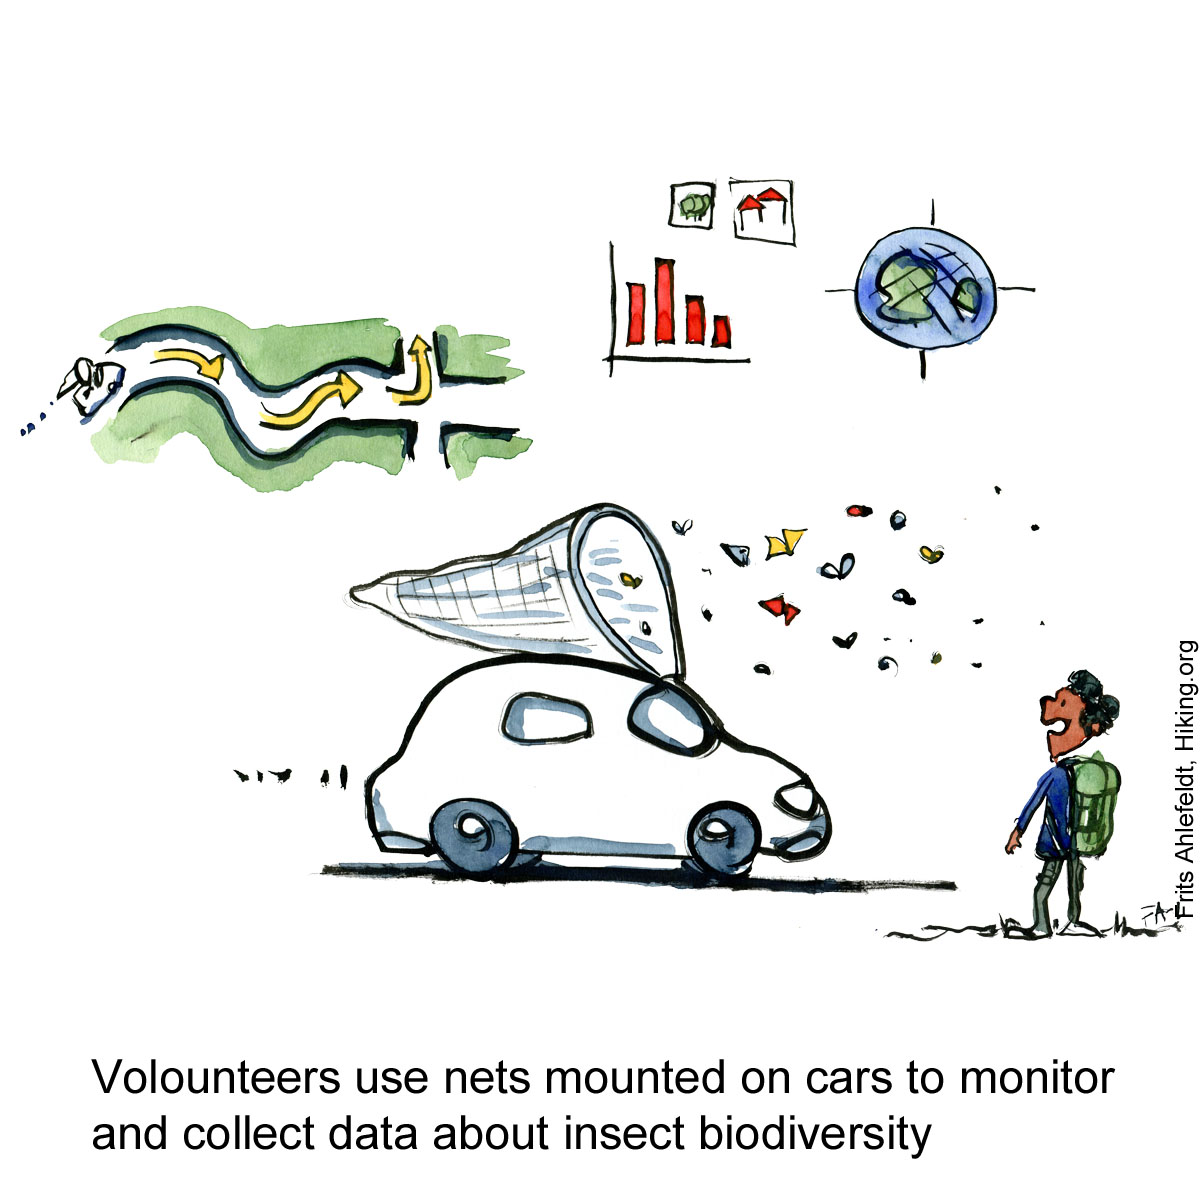 Drawing of a car with a net attached to catch and research insects. Citizen Science illustration by Frits Ahlefeldt